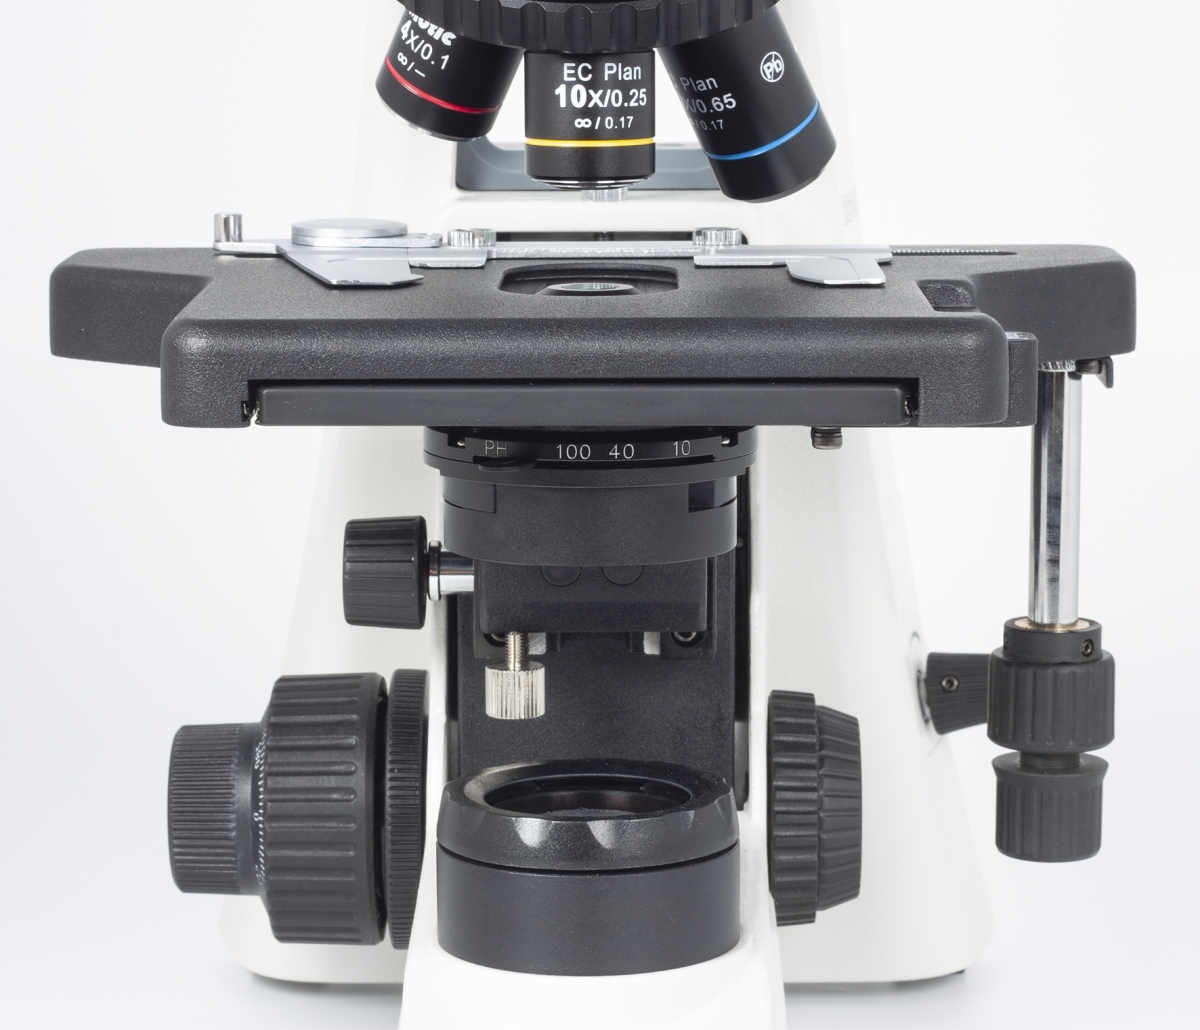 Microscope MOTIC BA210 Elite -3